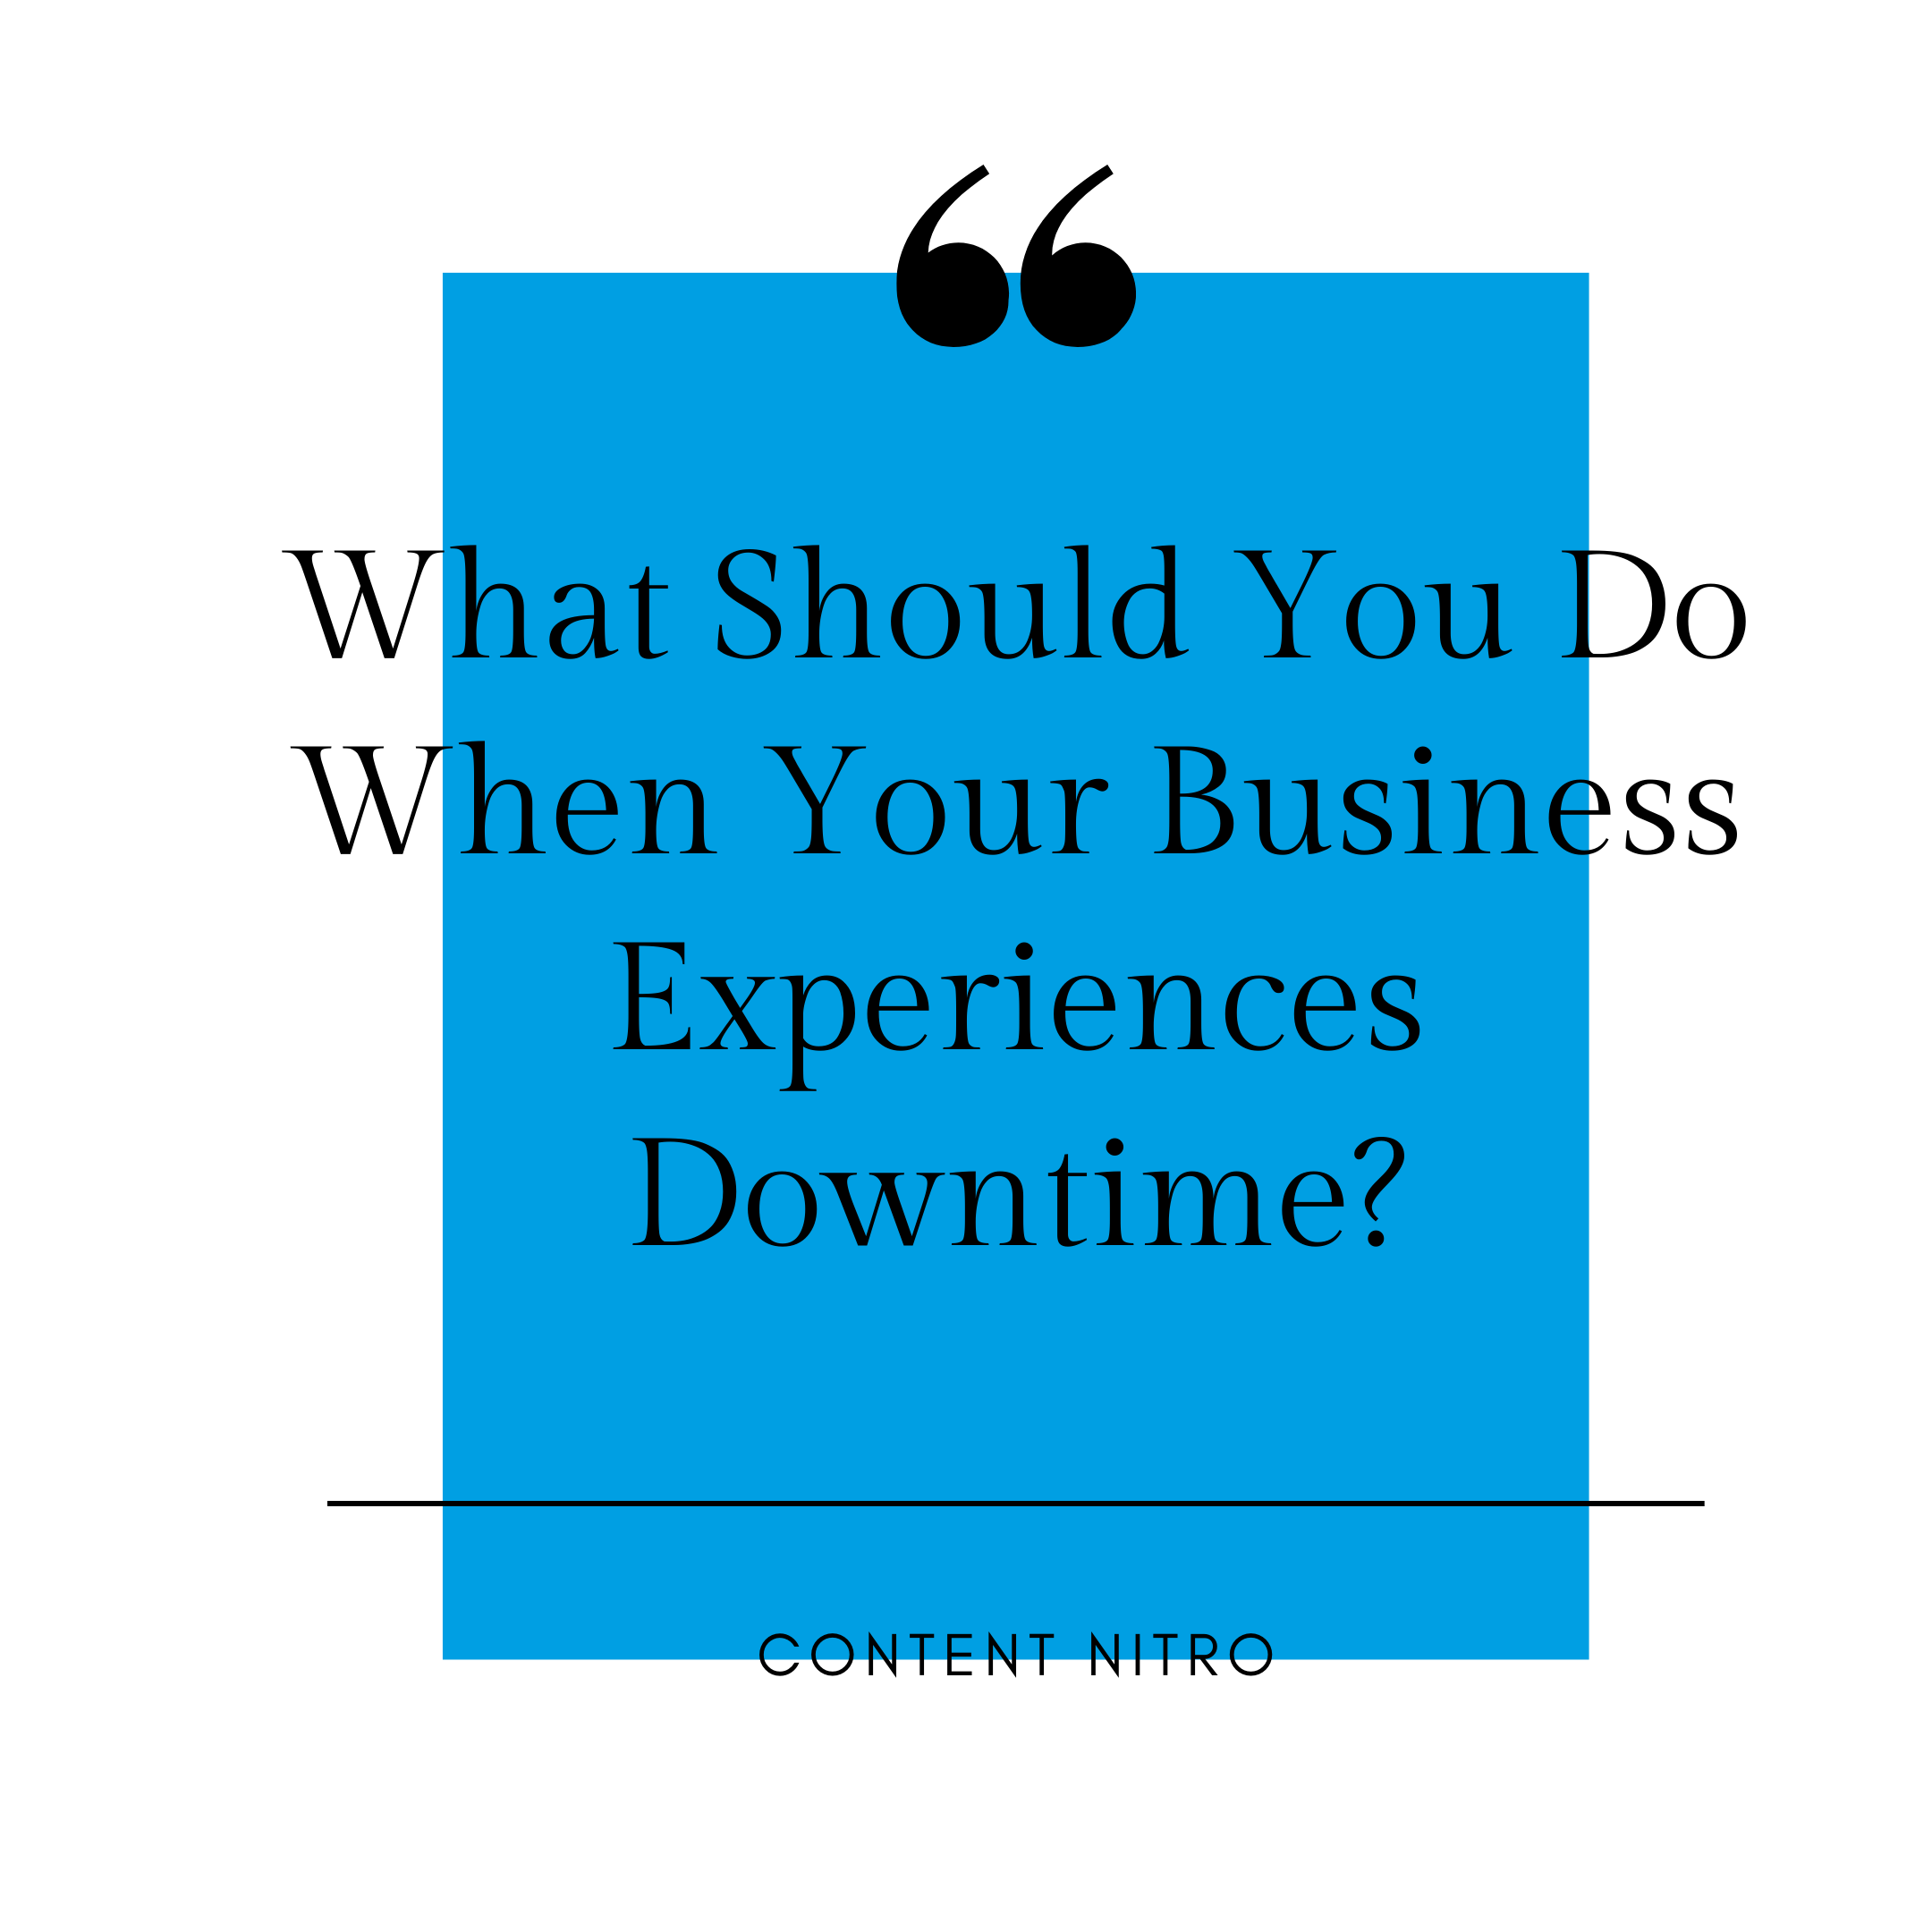 What Should You Do When Your Business Experiences Downtime?